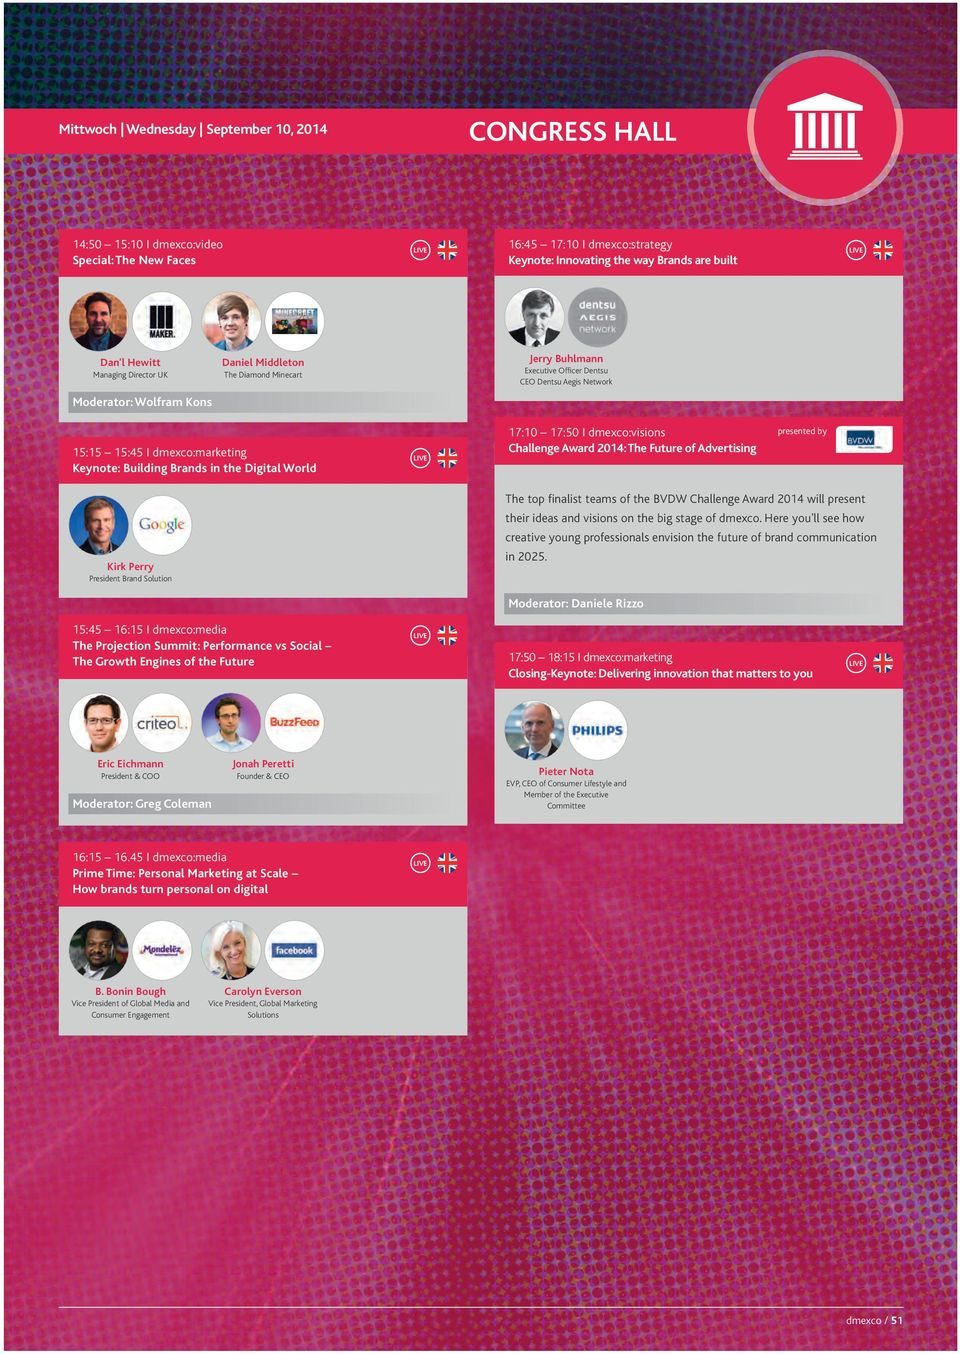 14 08:17 Seite 51 CONGReSS HALL Mittwoch Wednesday September 10, 2014 14:50 15:10 I dmexco:video Special: The New Faces Dan'l Hewitt Executive Officer Dentsu Dentsu Aegis Network The Diamond Minecart